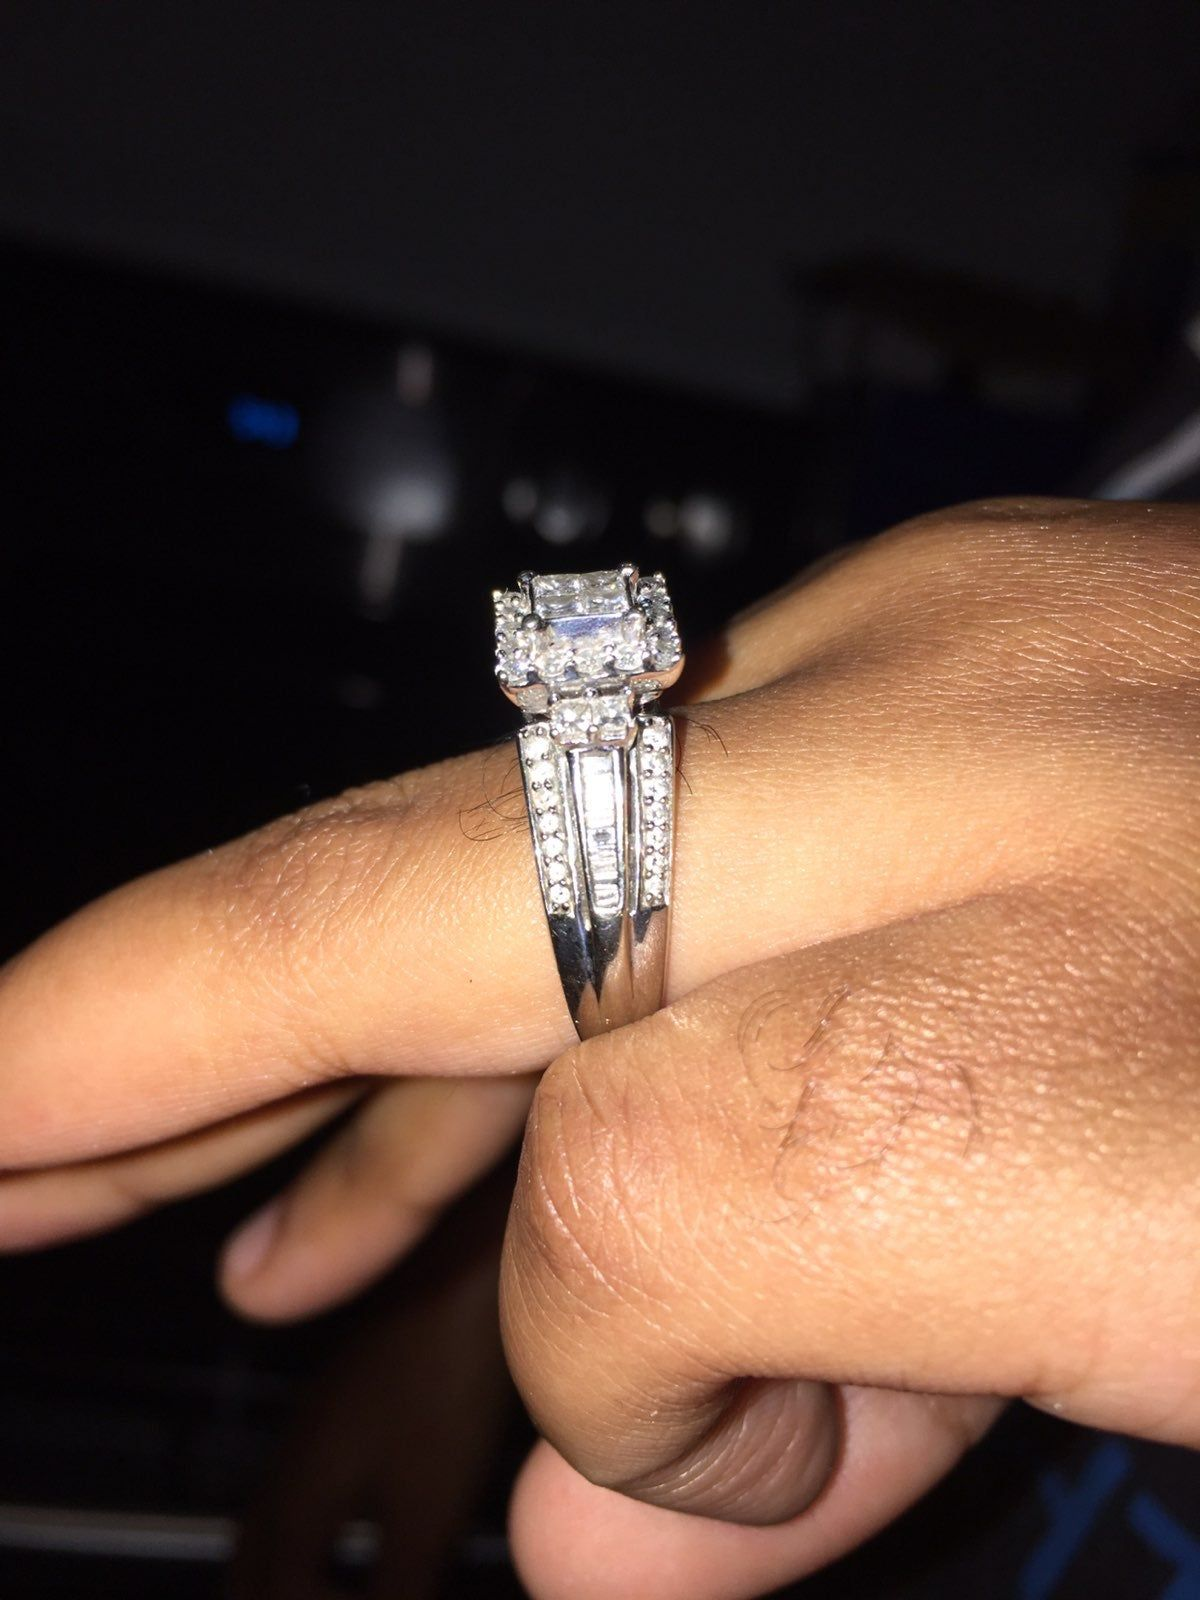 10kwg Diamond Ring Size 8 This Ring Has 1ct Worth Of Flawless Diamonds And Was Recently Purchased From Zales In Sept White Gold Rings Rings Flawless Diamond